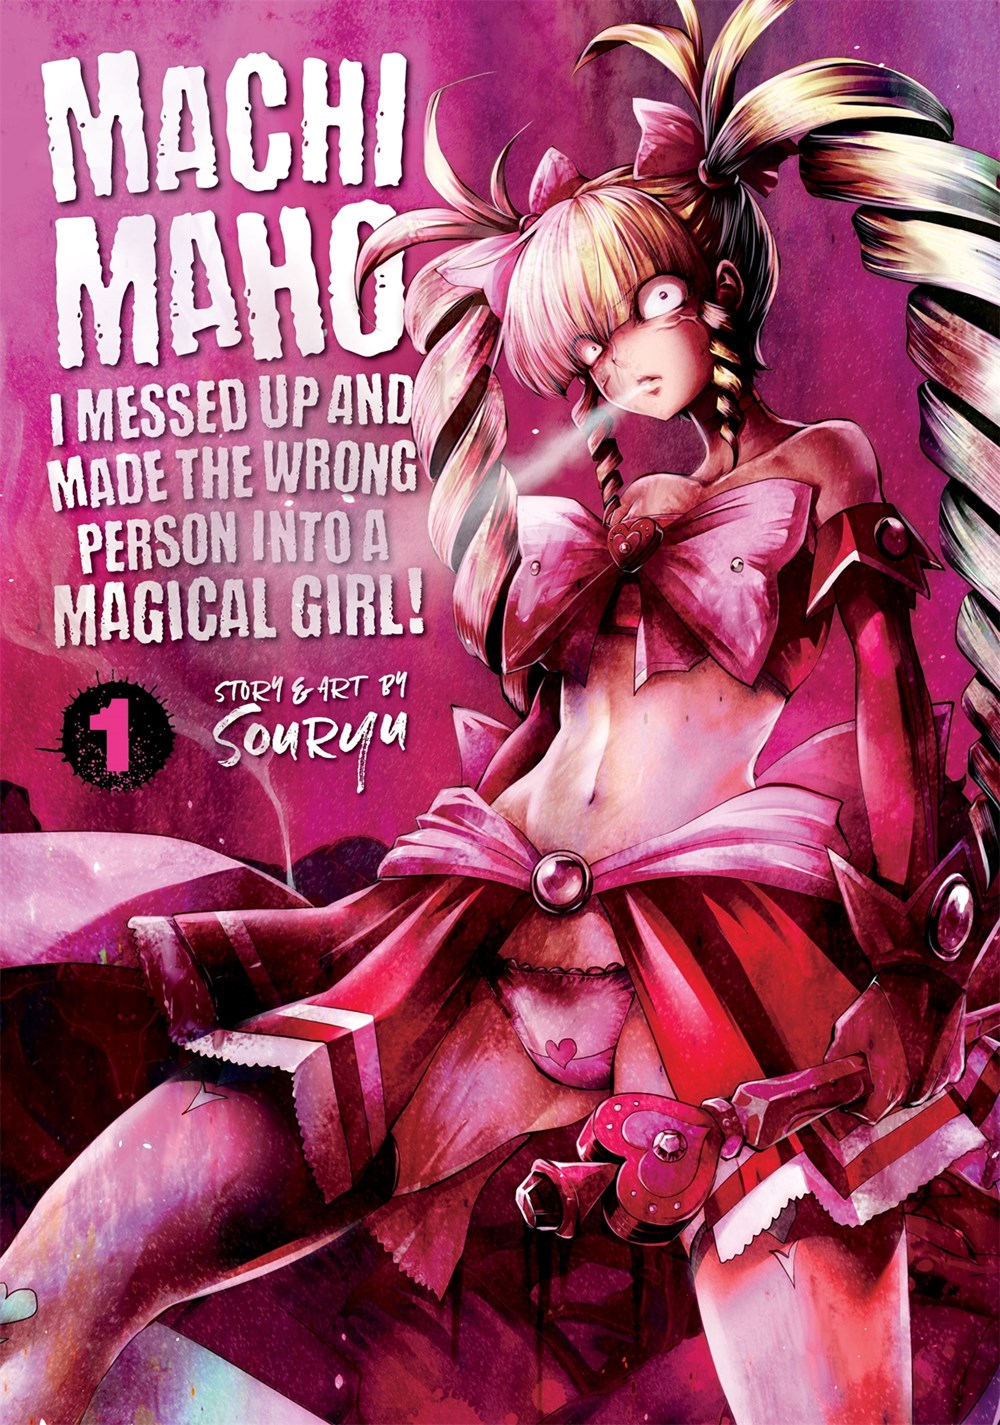 Machimaho I Messed Up and Made the Wrong Person Into a Magical Girl! Manga Volume 1